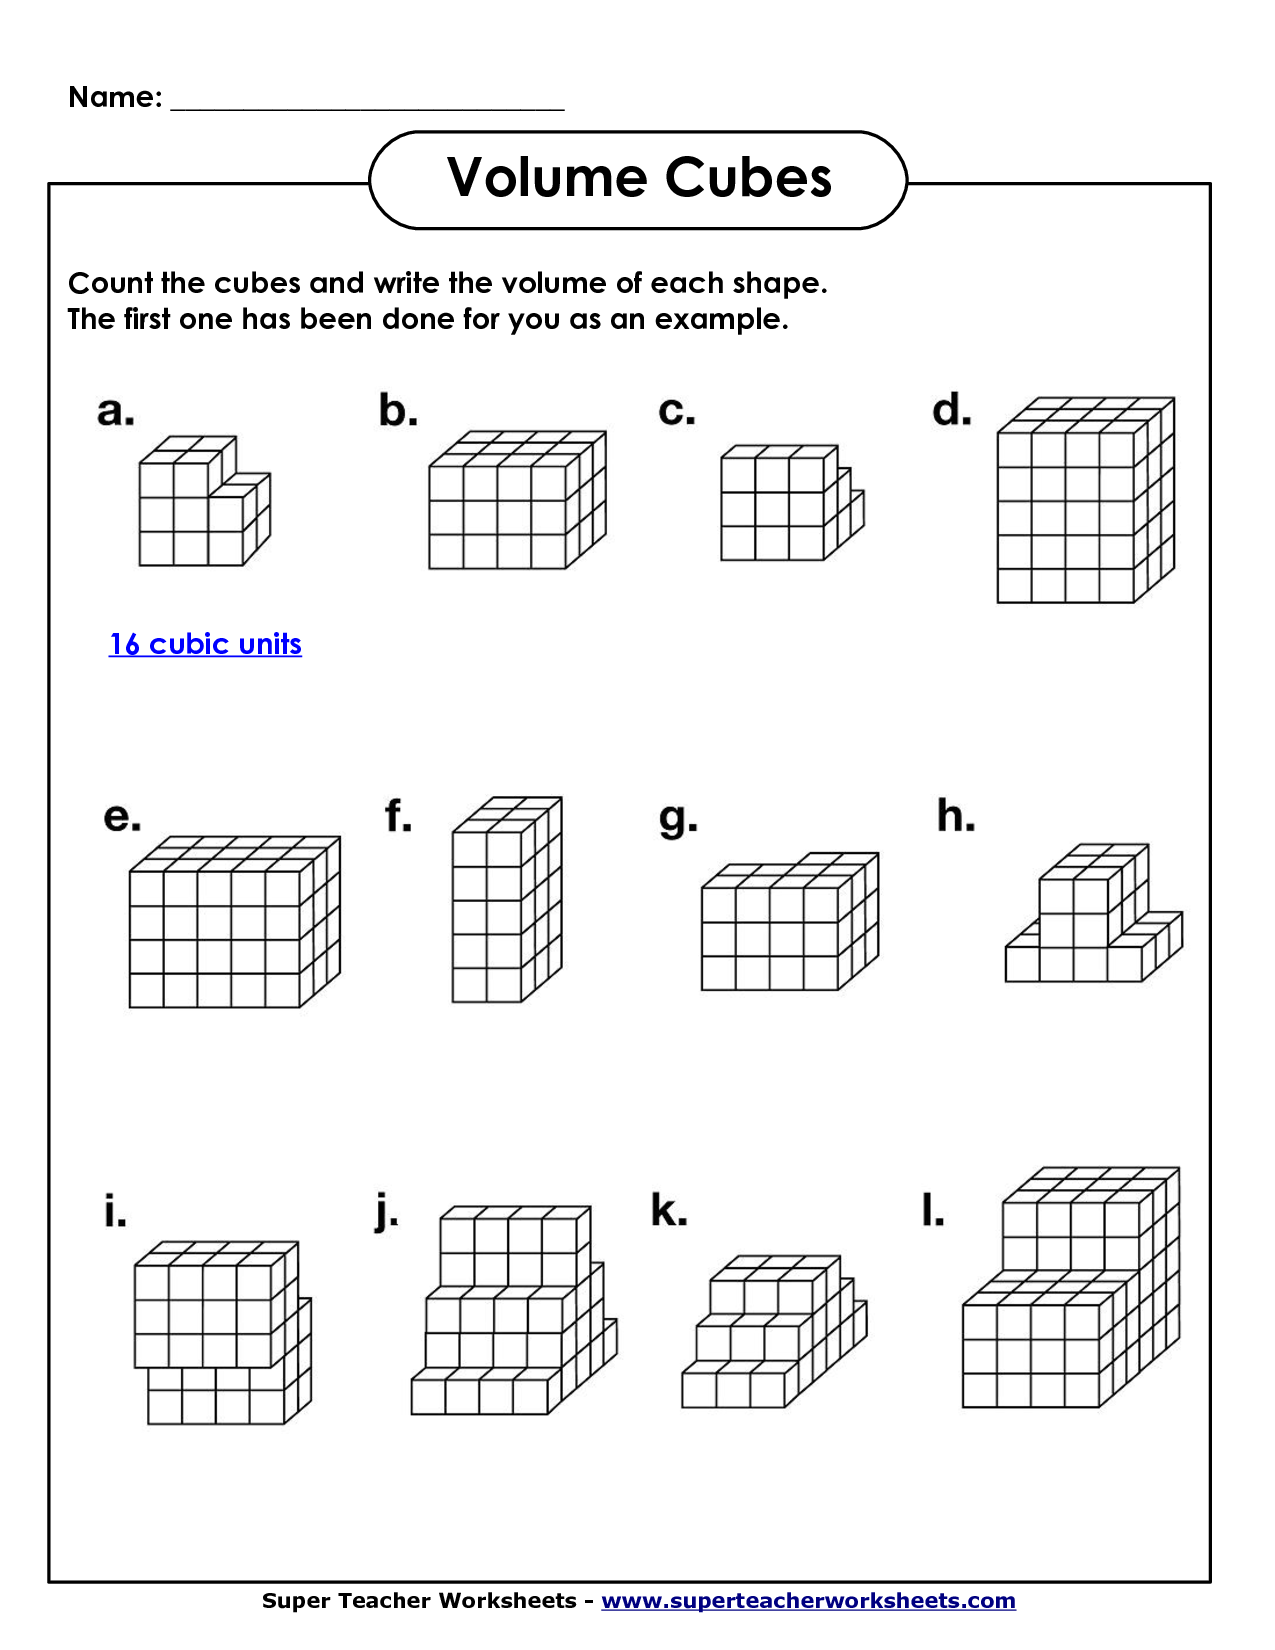 Worksheet 5th Grade Math Worksheets Pdf 5th grade math worksheets pdf syndeomedia activities and the o 39 jays on pinterest